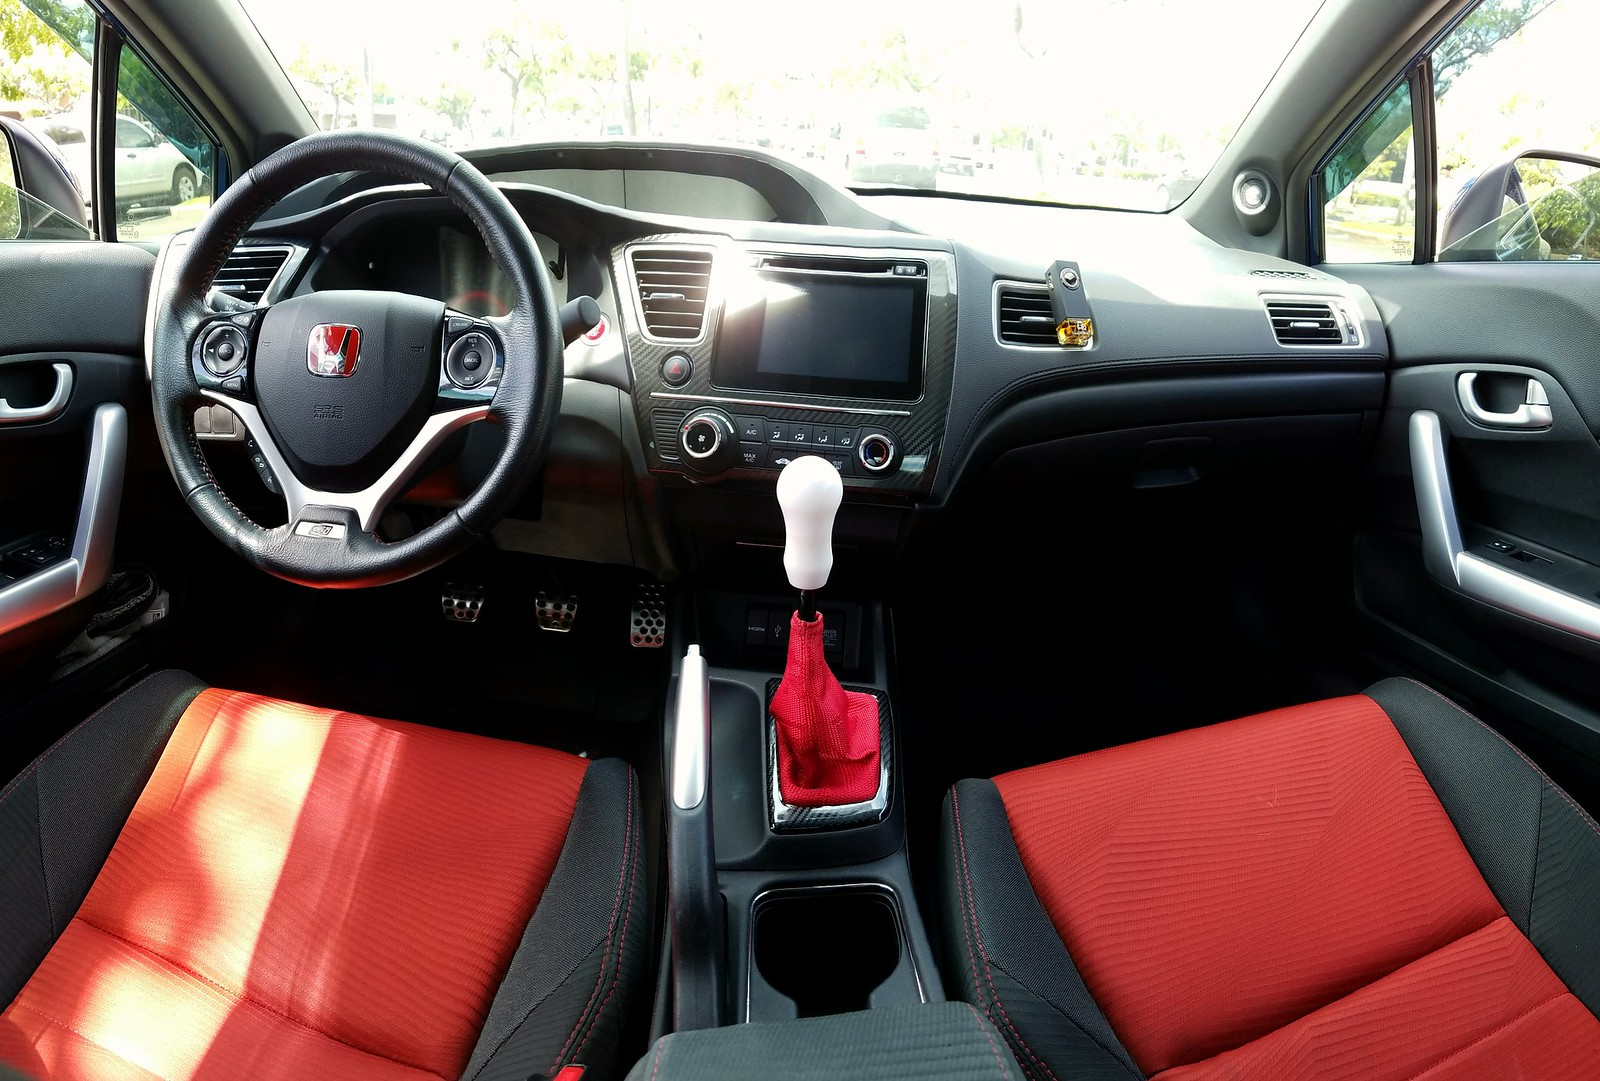 Interior 2015 Civic Si By Zrksi, On Flickr